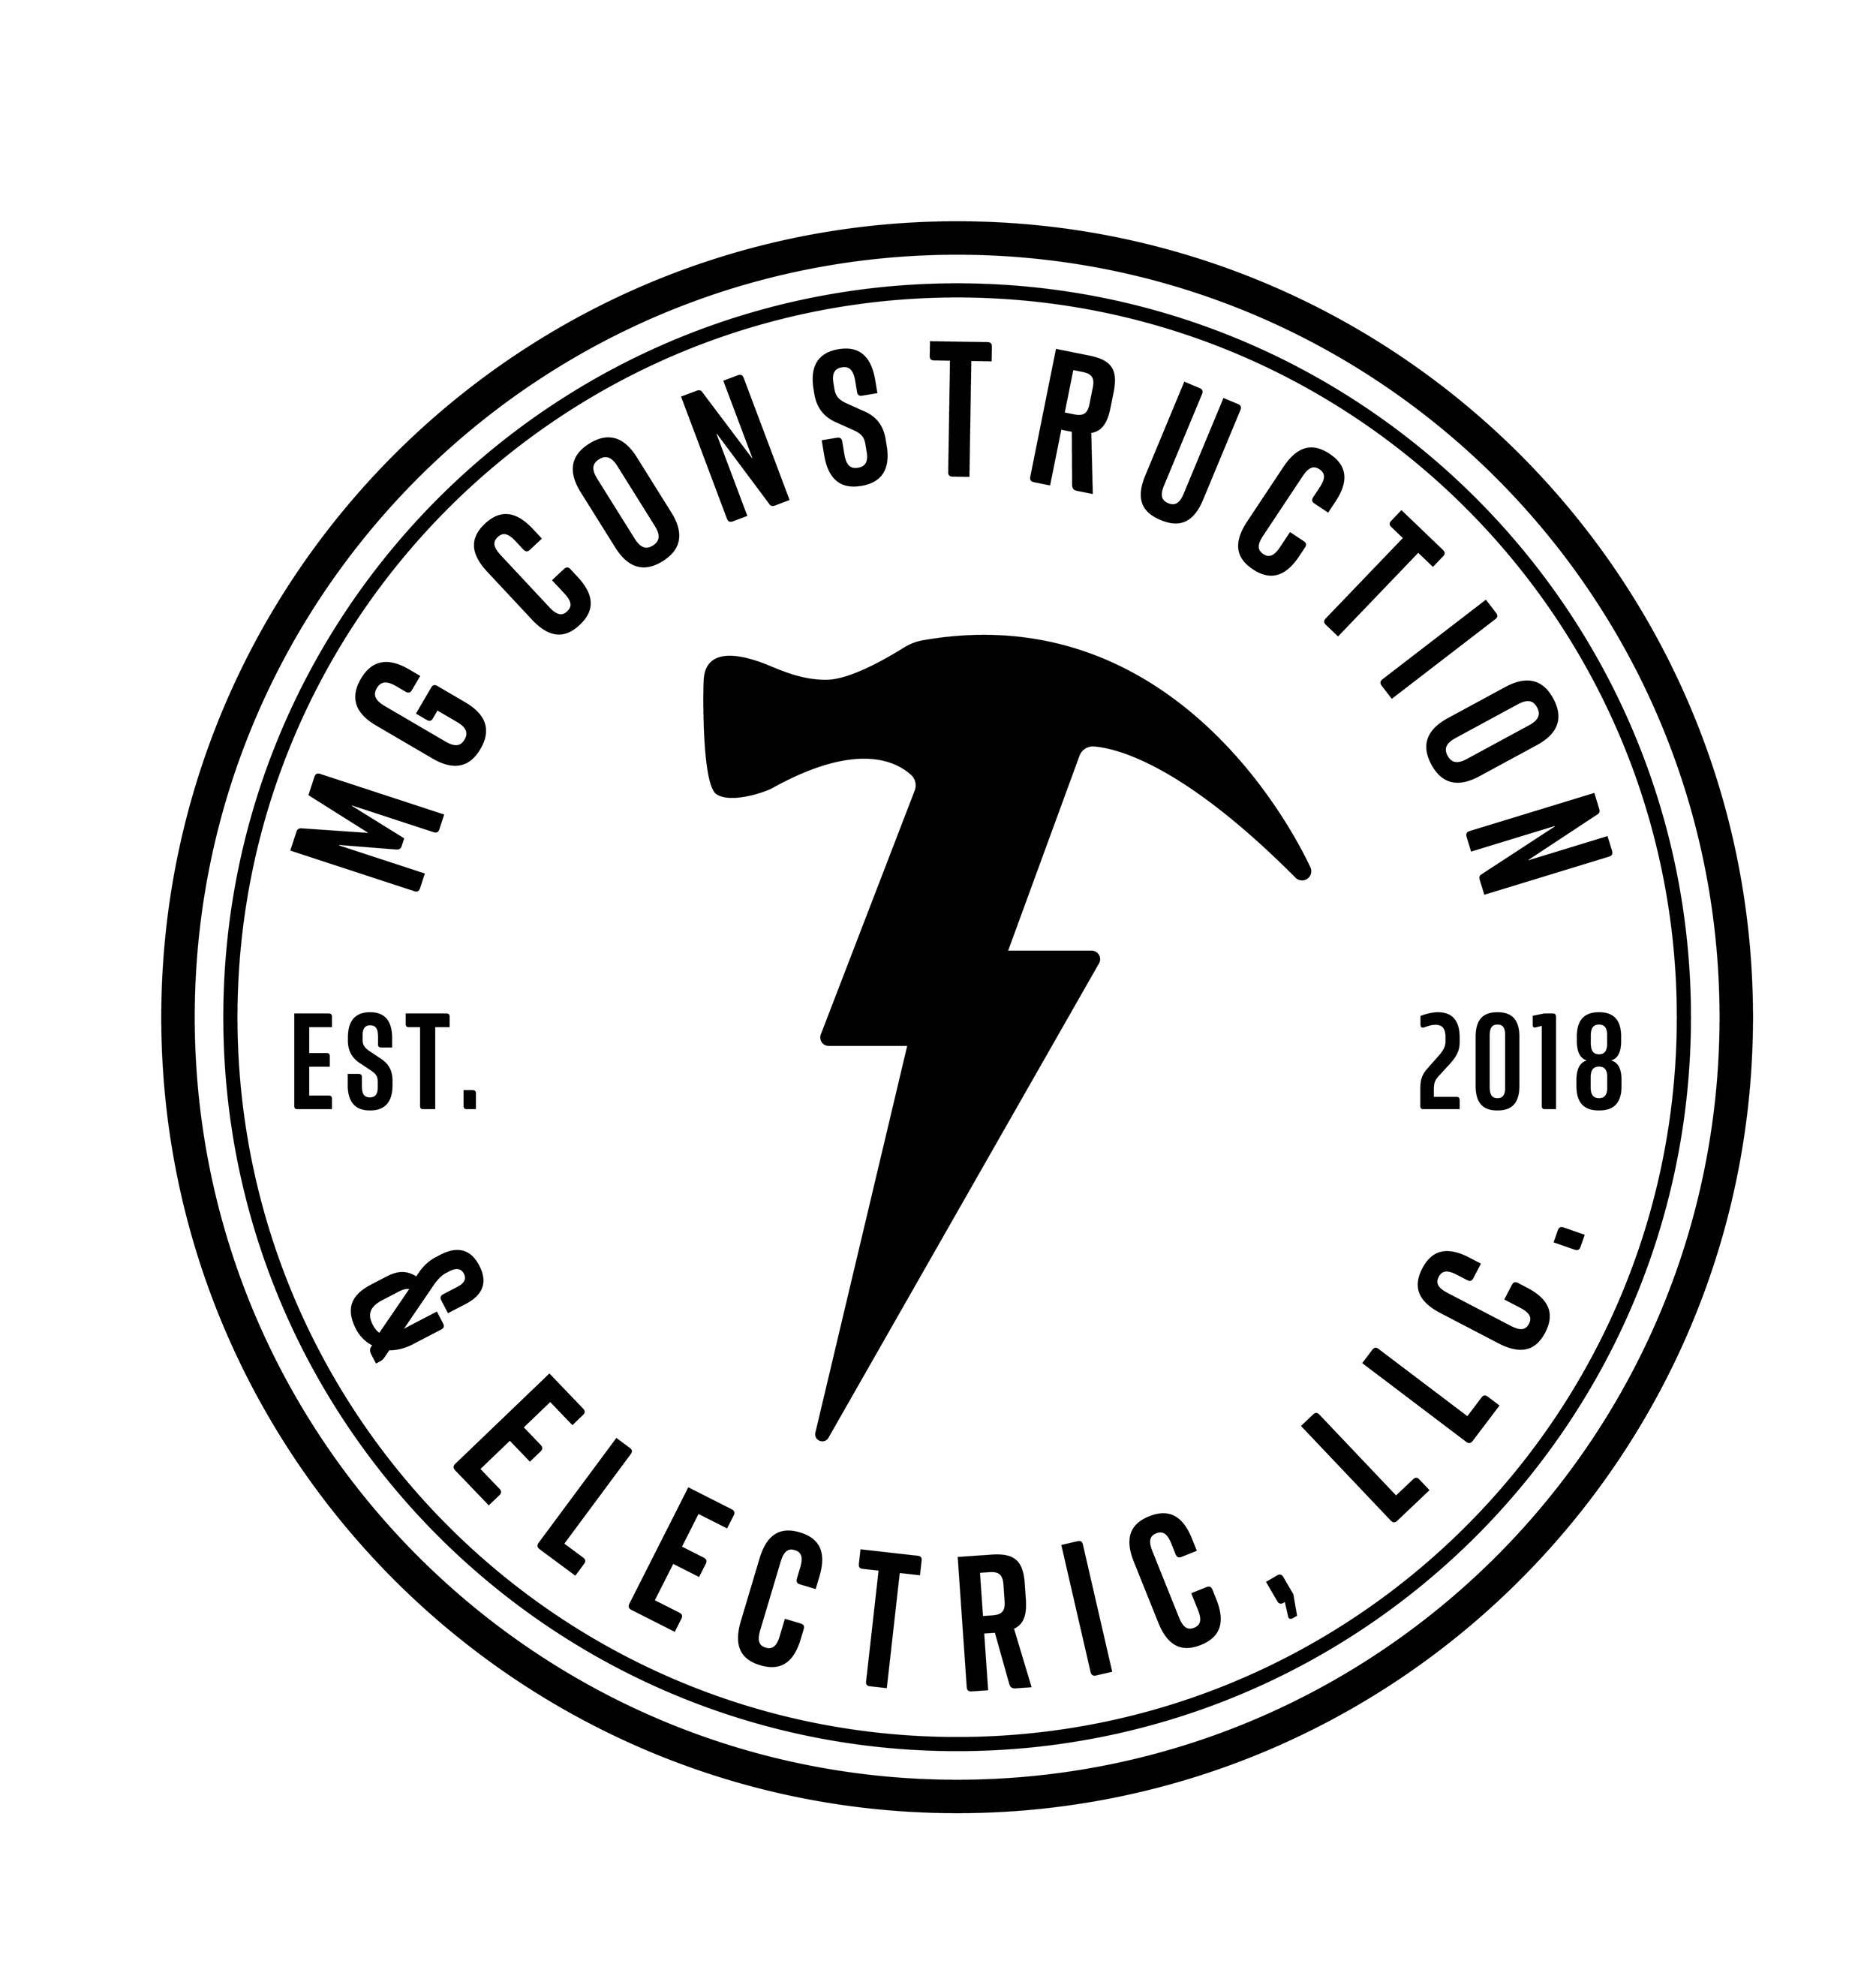 mg_constructionandelectrical-01.jpg